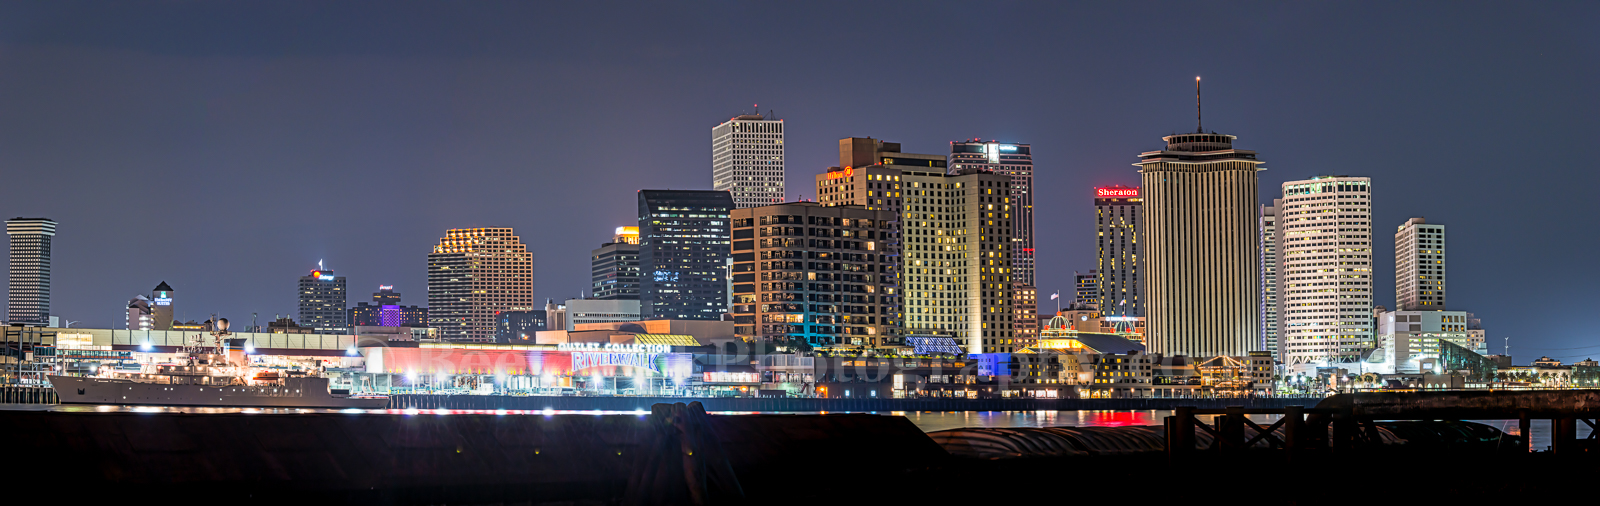 Lousianna, New Orleans, buildings, city, skyline, cityscapes, dark, downtown, high rise, night, pano, panorama, skyline, urban, waterfront, , New Orleans cityscapes, mississippi river, , photo